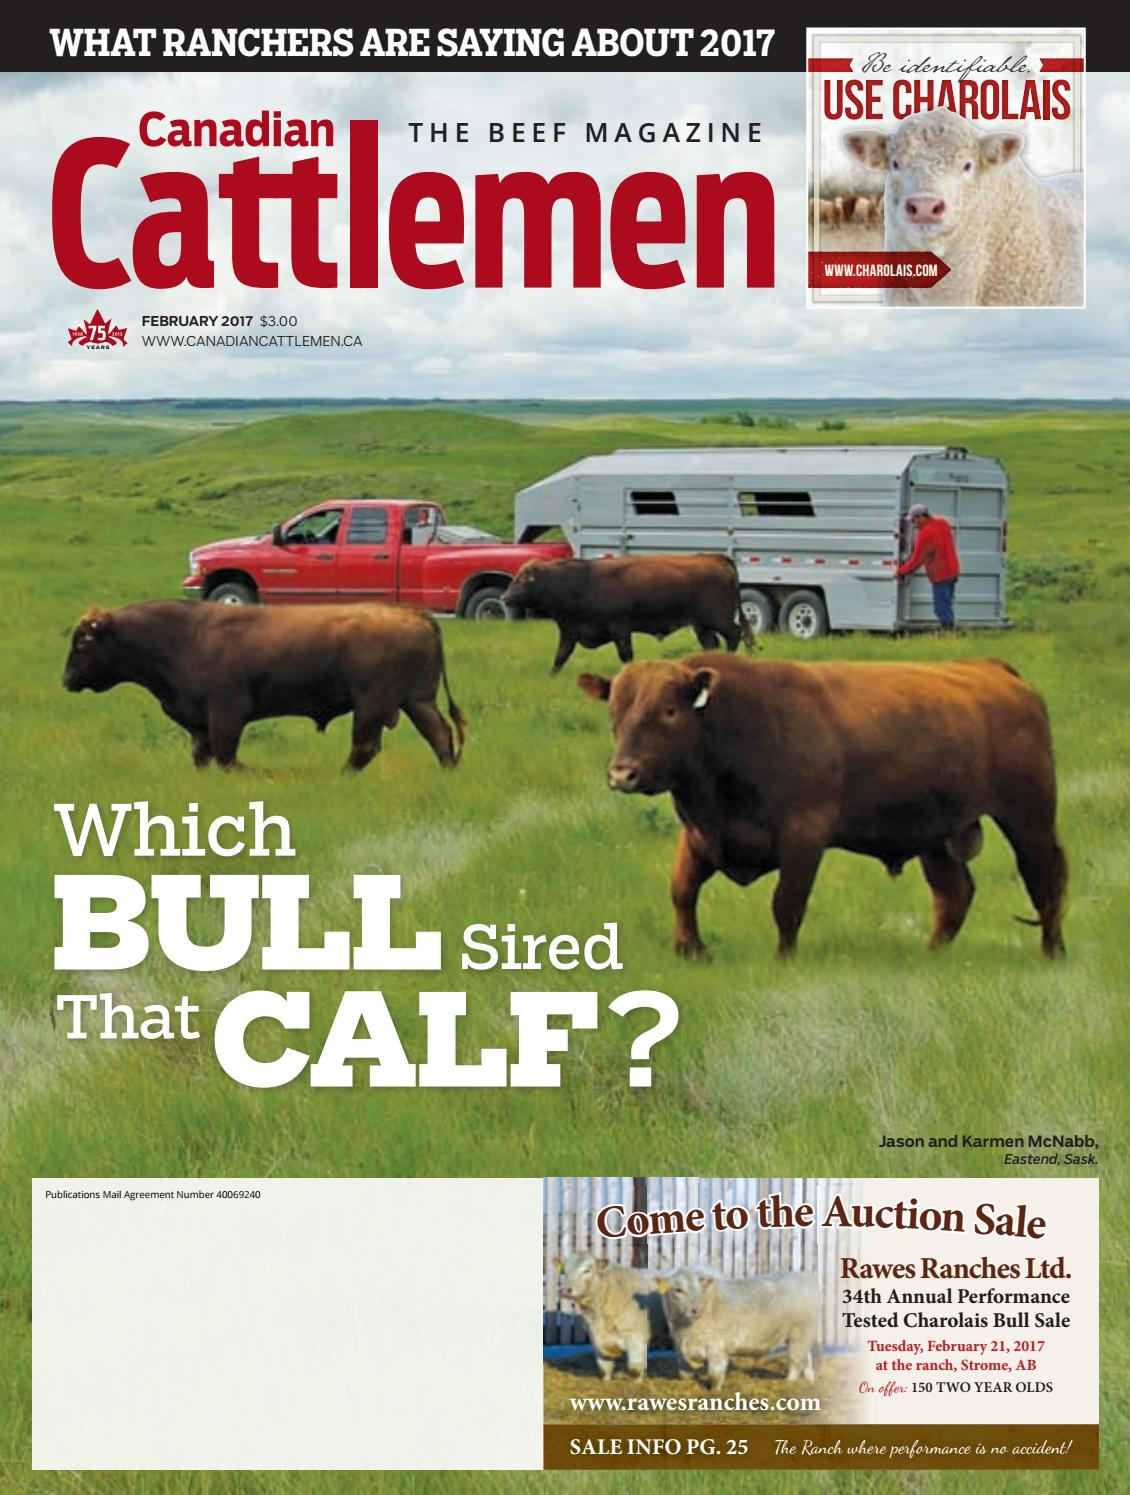 Set 3 Calf Fluid Nipple Magrath Feeder Replacement  Cow Dairy Beef Products New